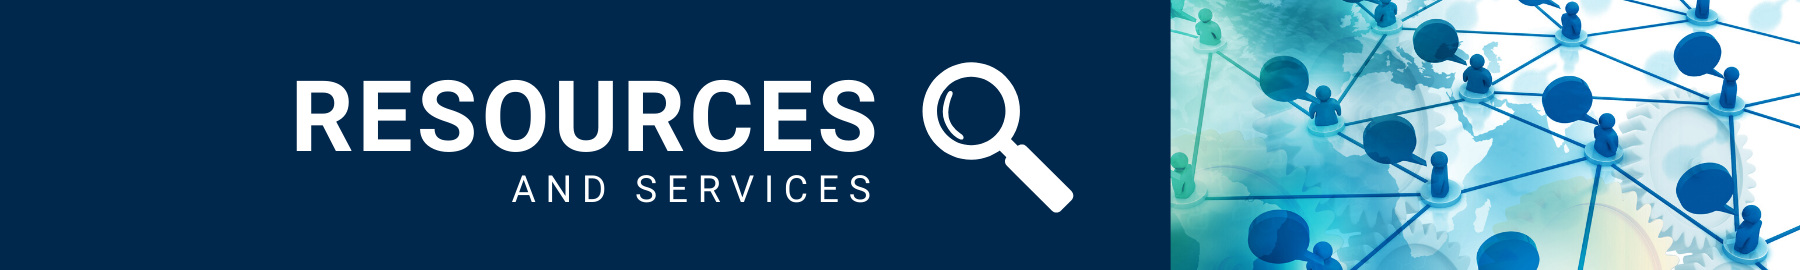 Resources & Services Banner